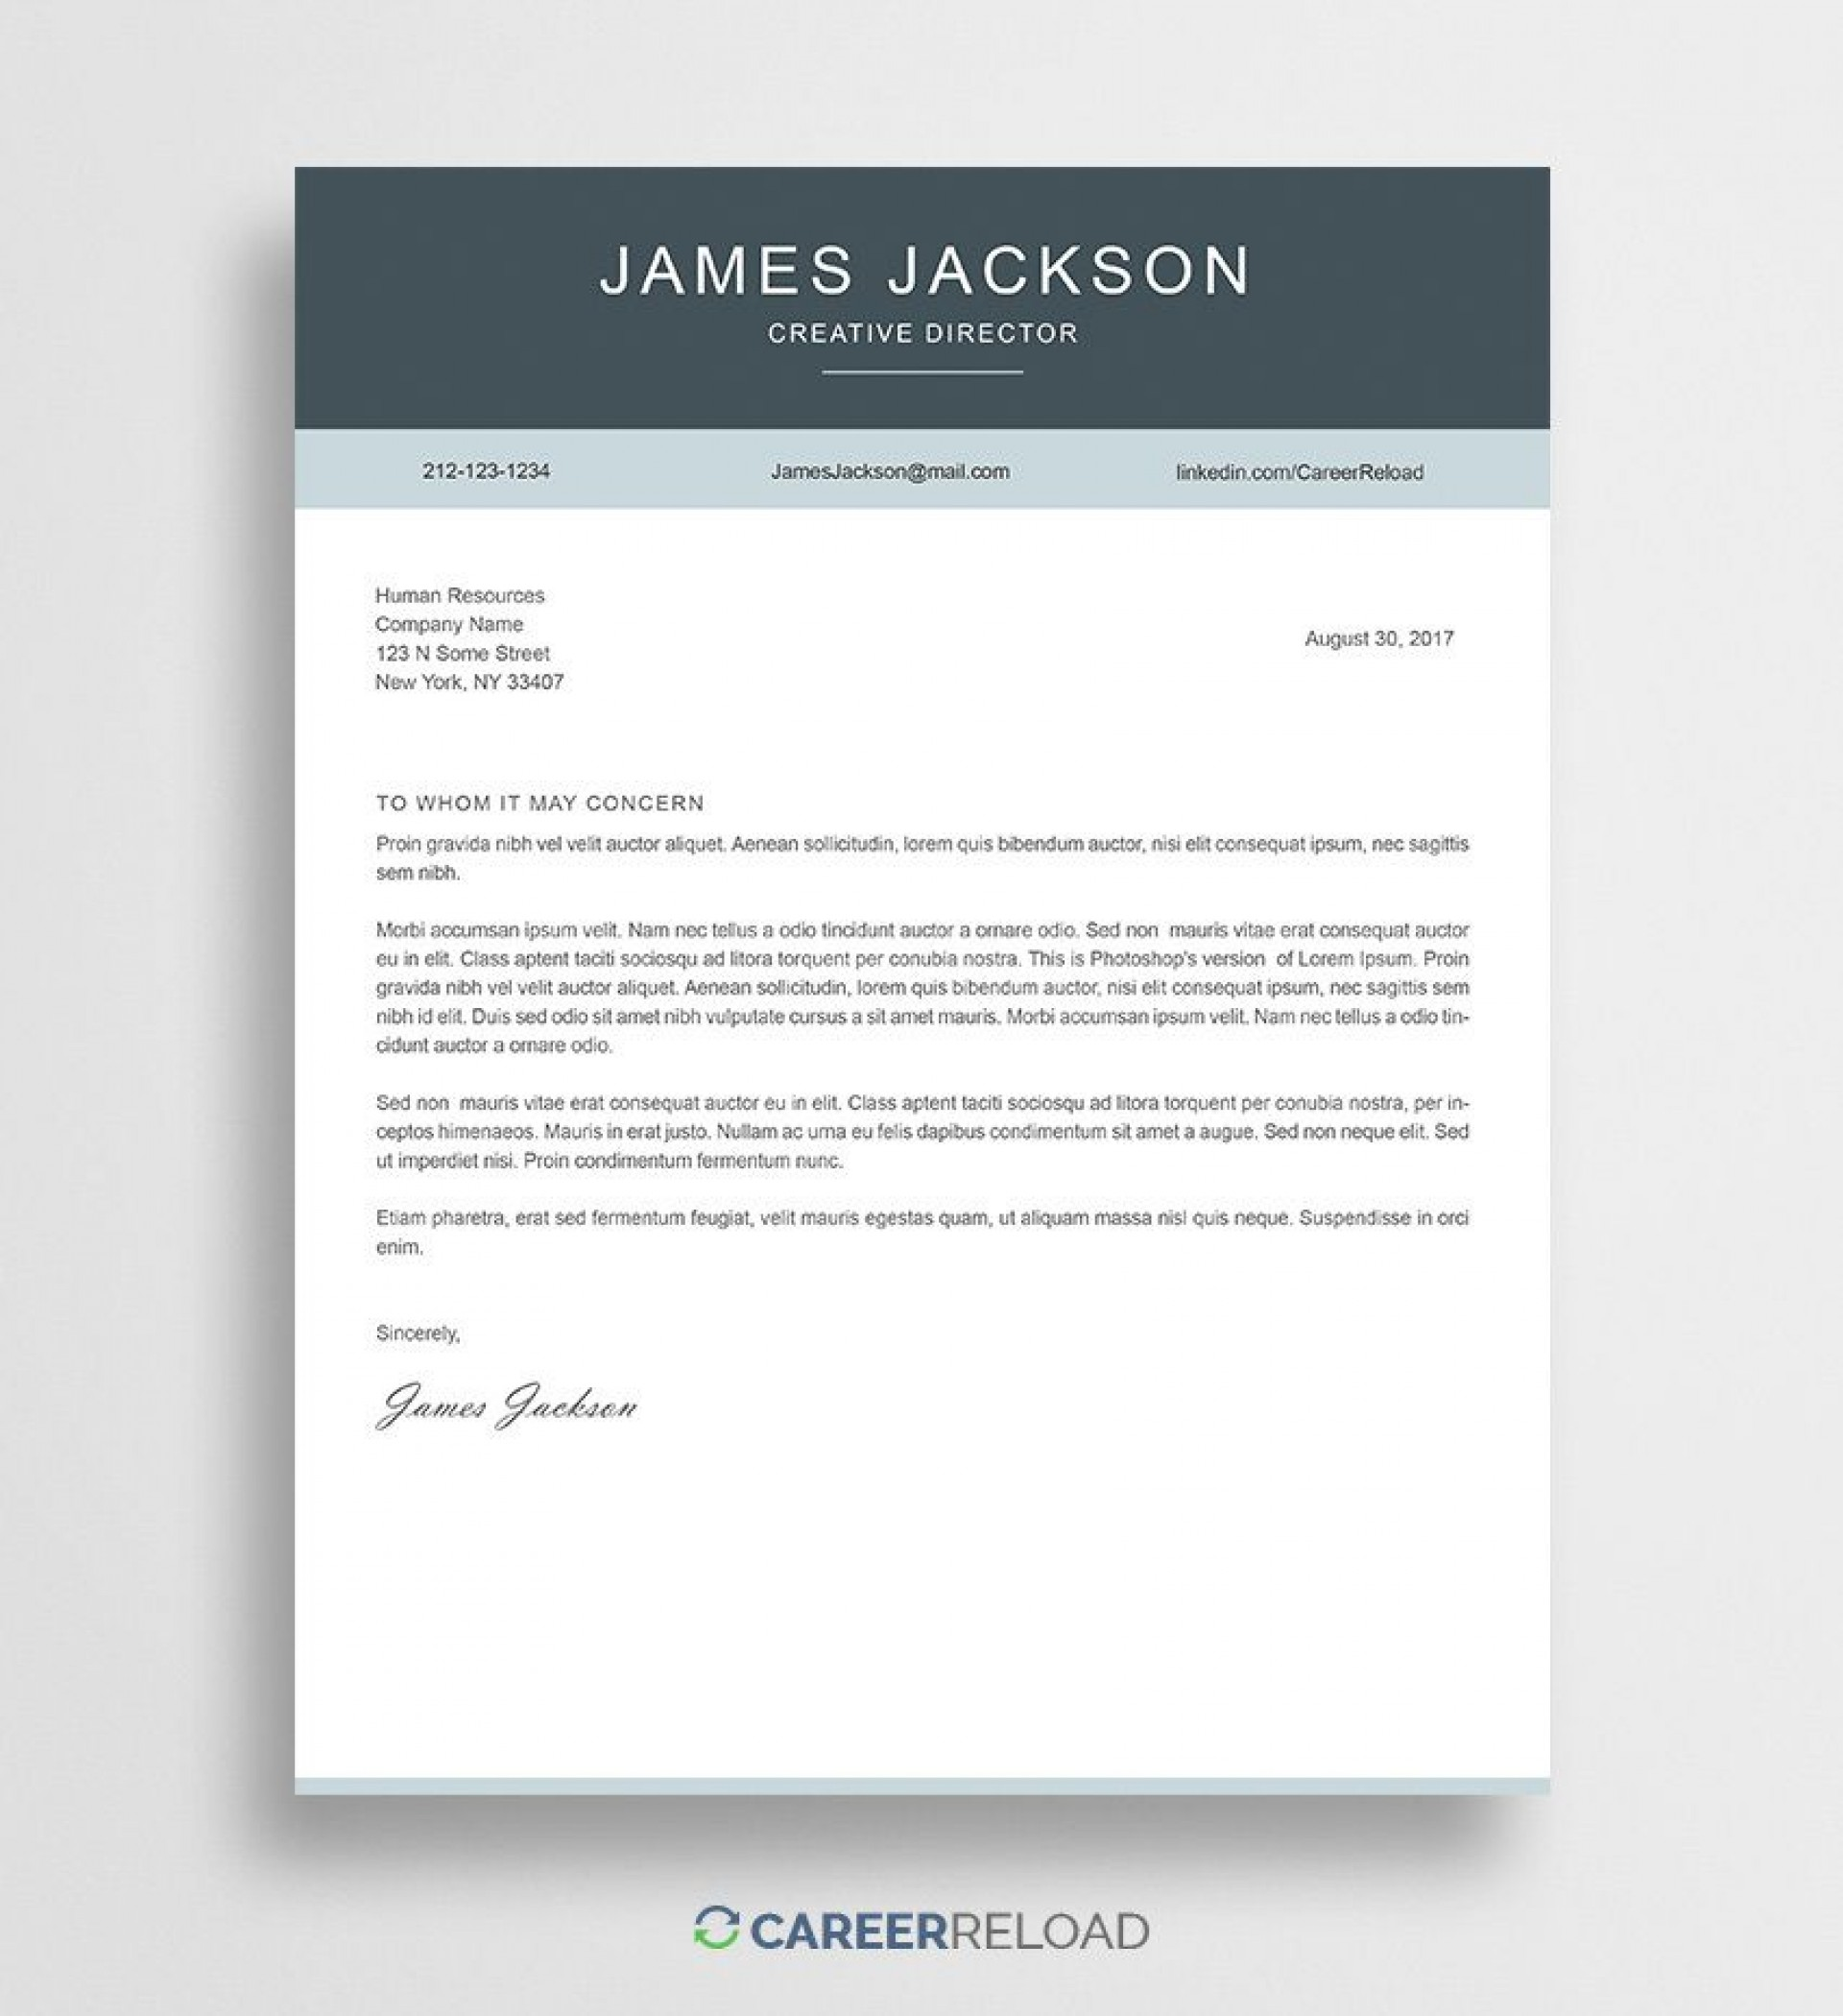 000 Rare Download Cover Letter Template Free Concept  Mac Creative Microsoft Word Document1920